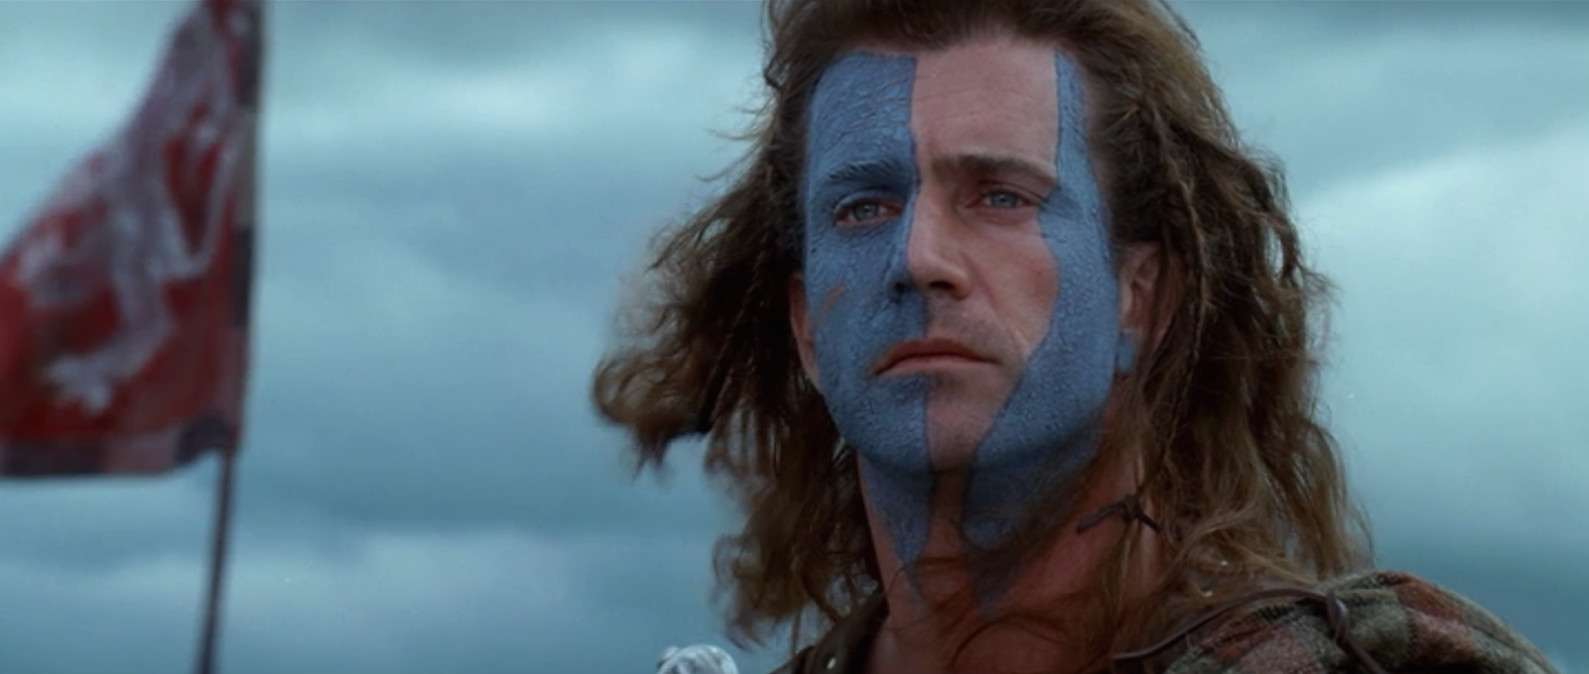 Never Fall In Love Wallpaper 20 Things You Never Knew About Braveheart Beyond The